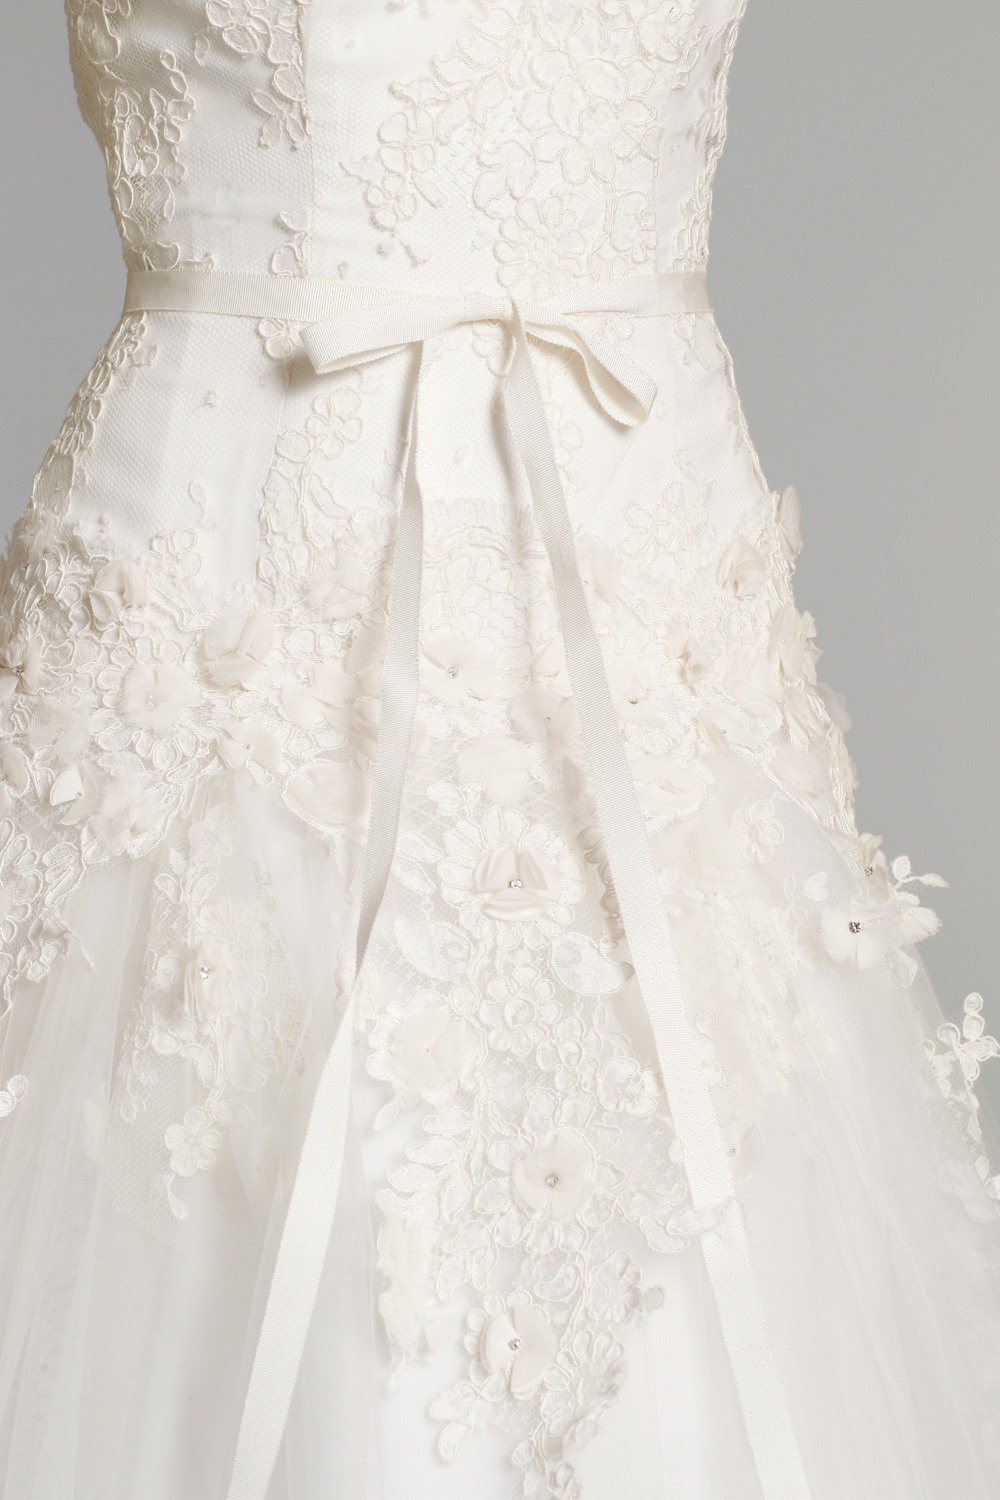 Bridal-gown-wedding-dress-jlm-hayley-paige-fall-2012-serafina-detail.full